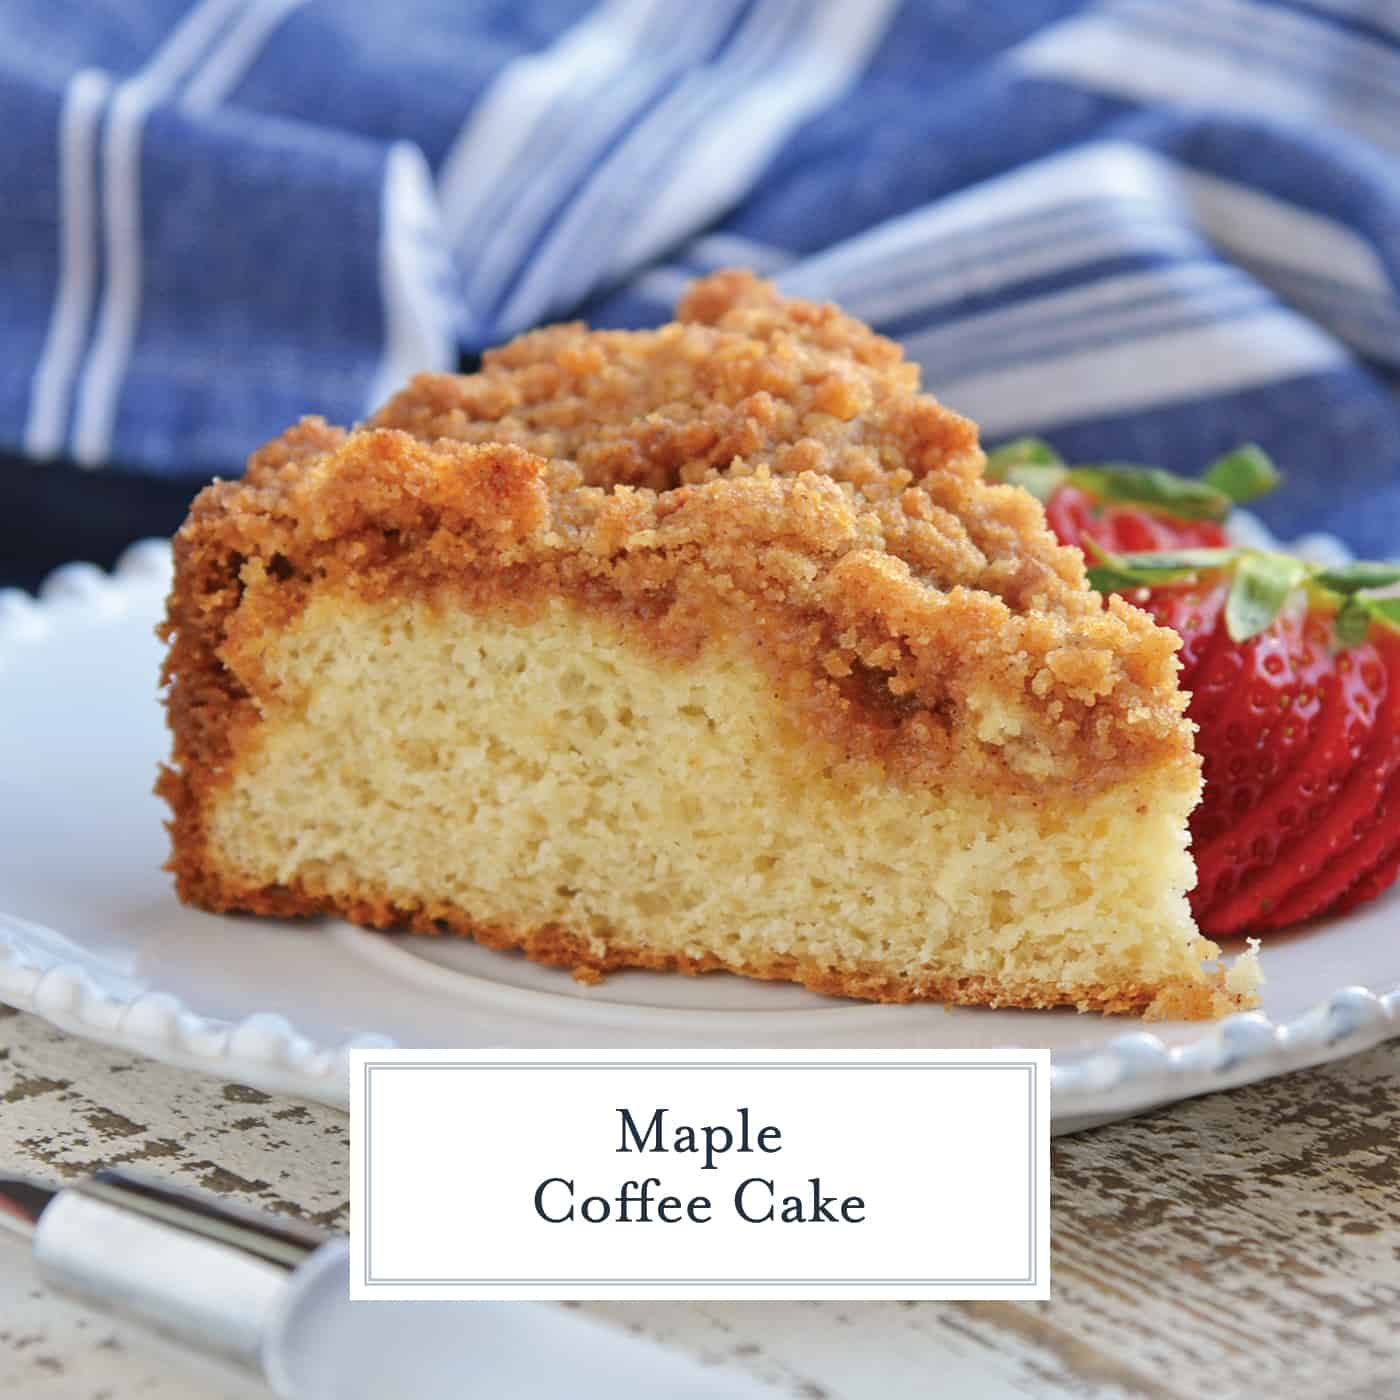 Maple Coffee Cake is an easy cake recipe using real maple